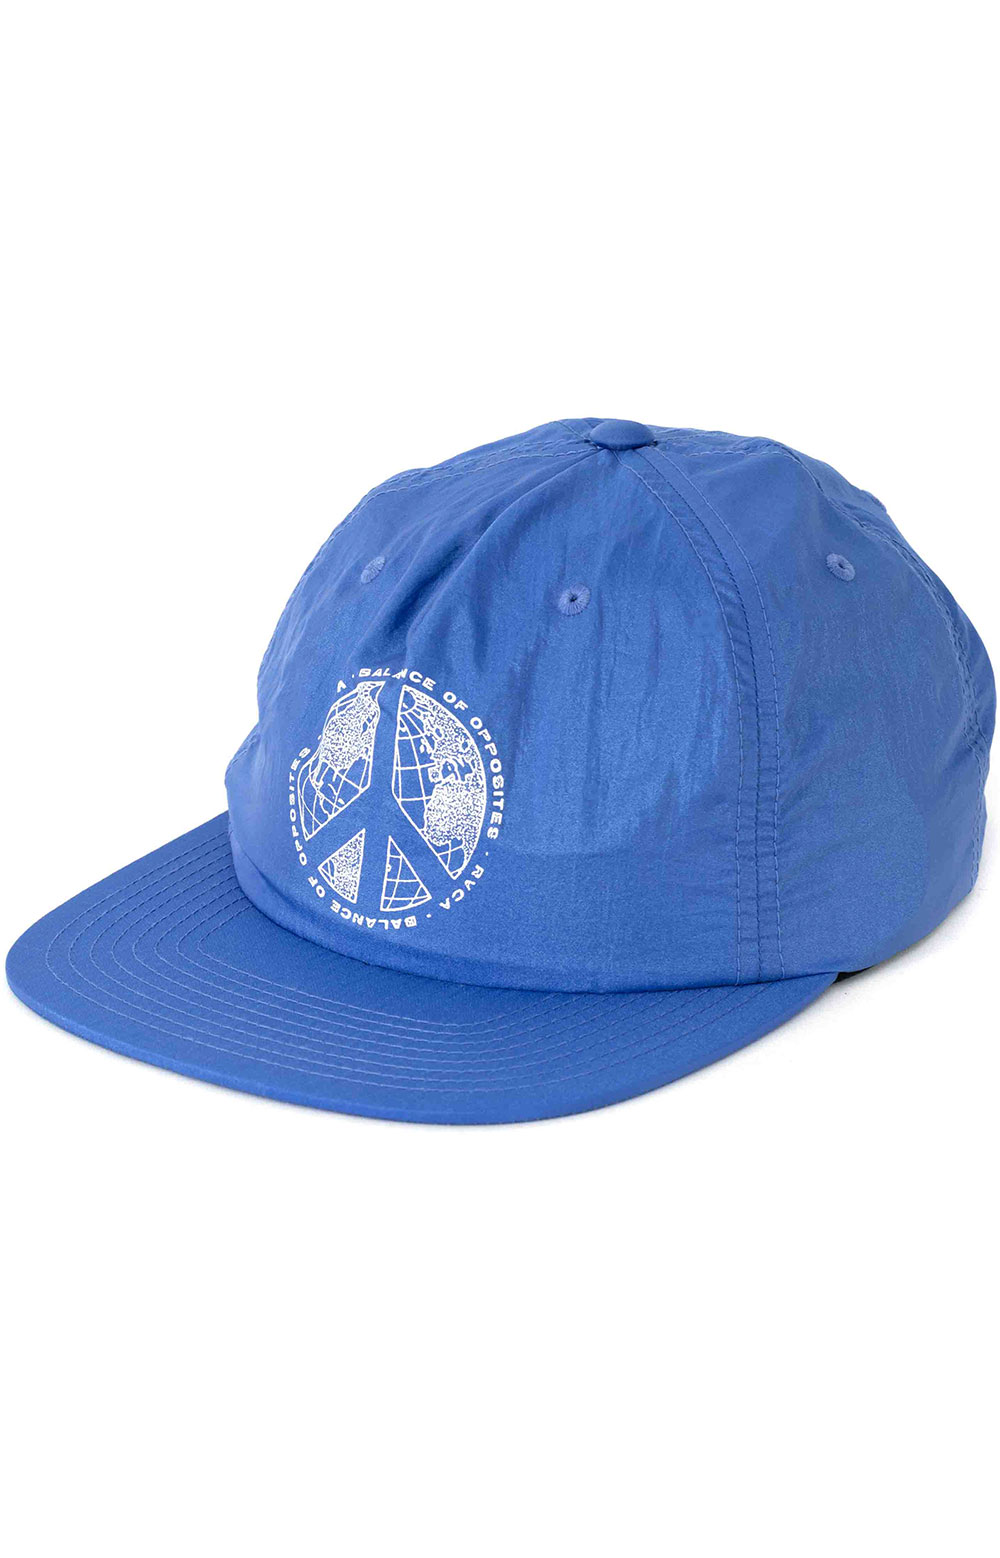 Pacifists Snap-Back Hat - Blue